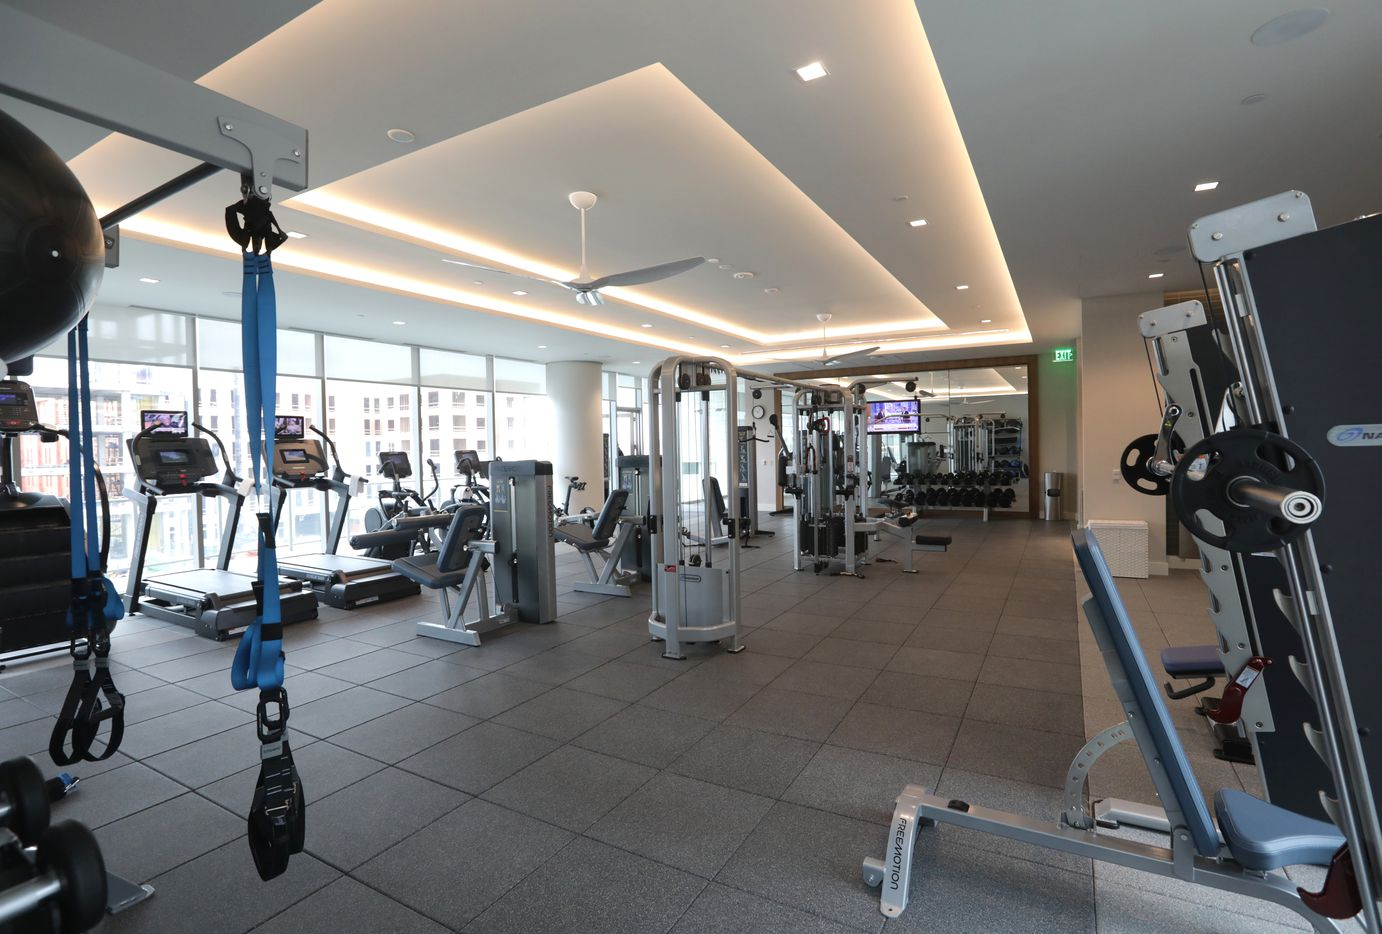 The workout area at Windrose Tower in Plano. (Jason Janik/Special Contributor)